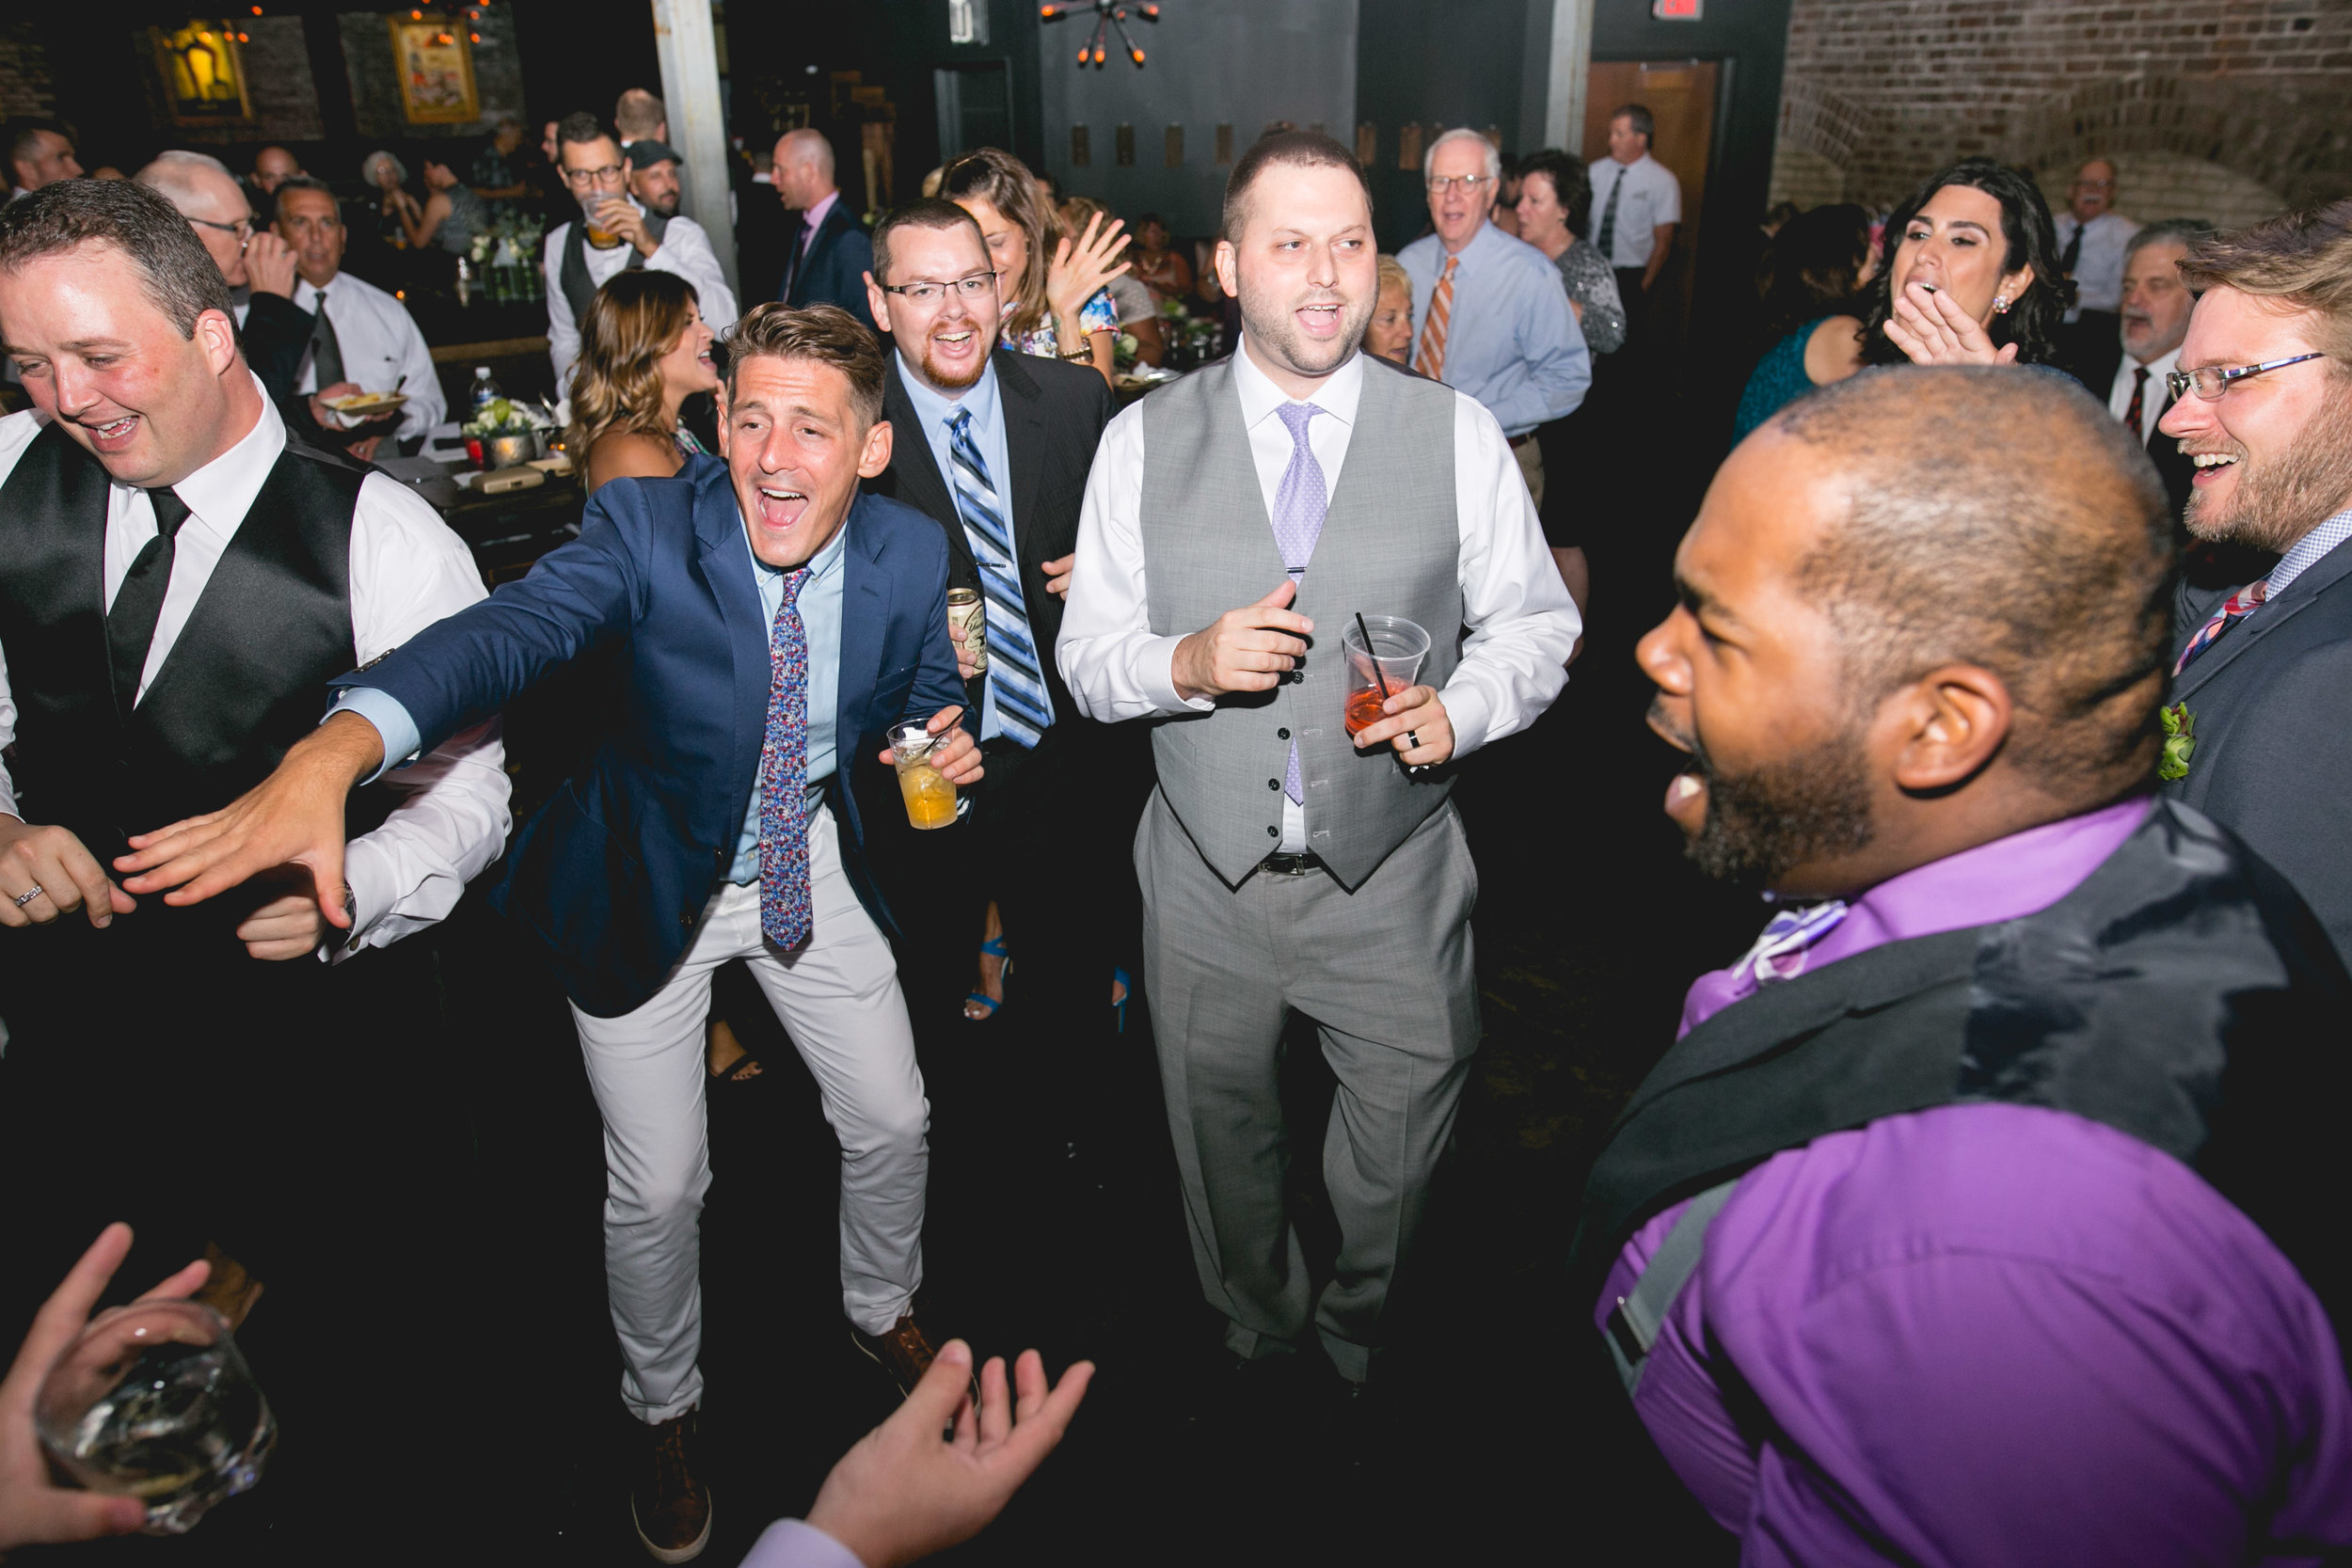 Philadelphia Gay Wedding at the Foundry at the Filmore